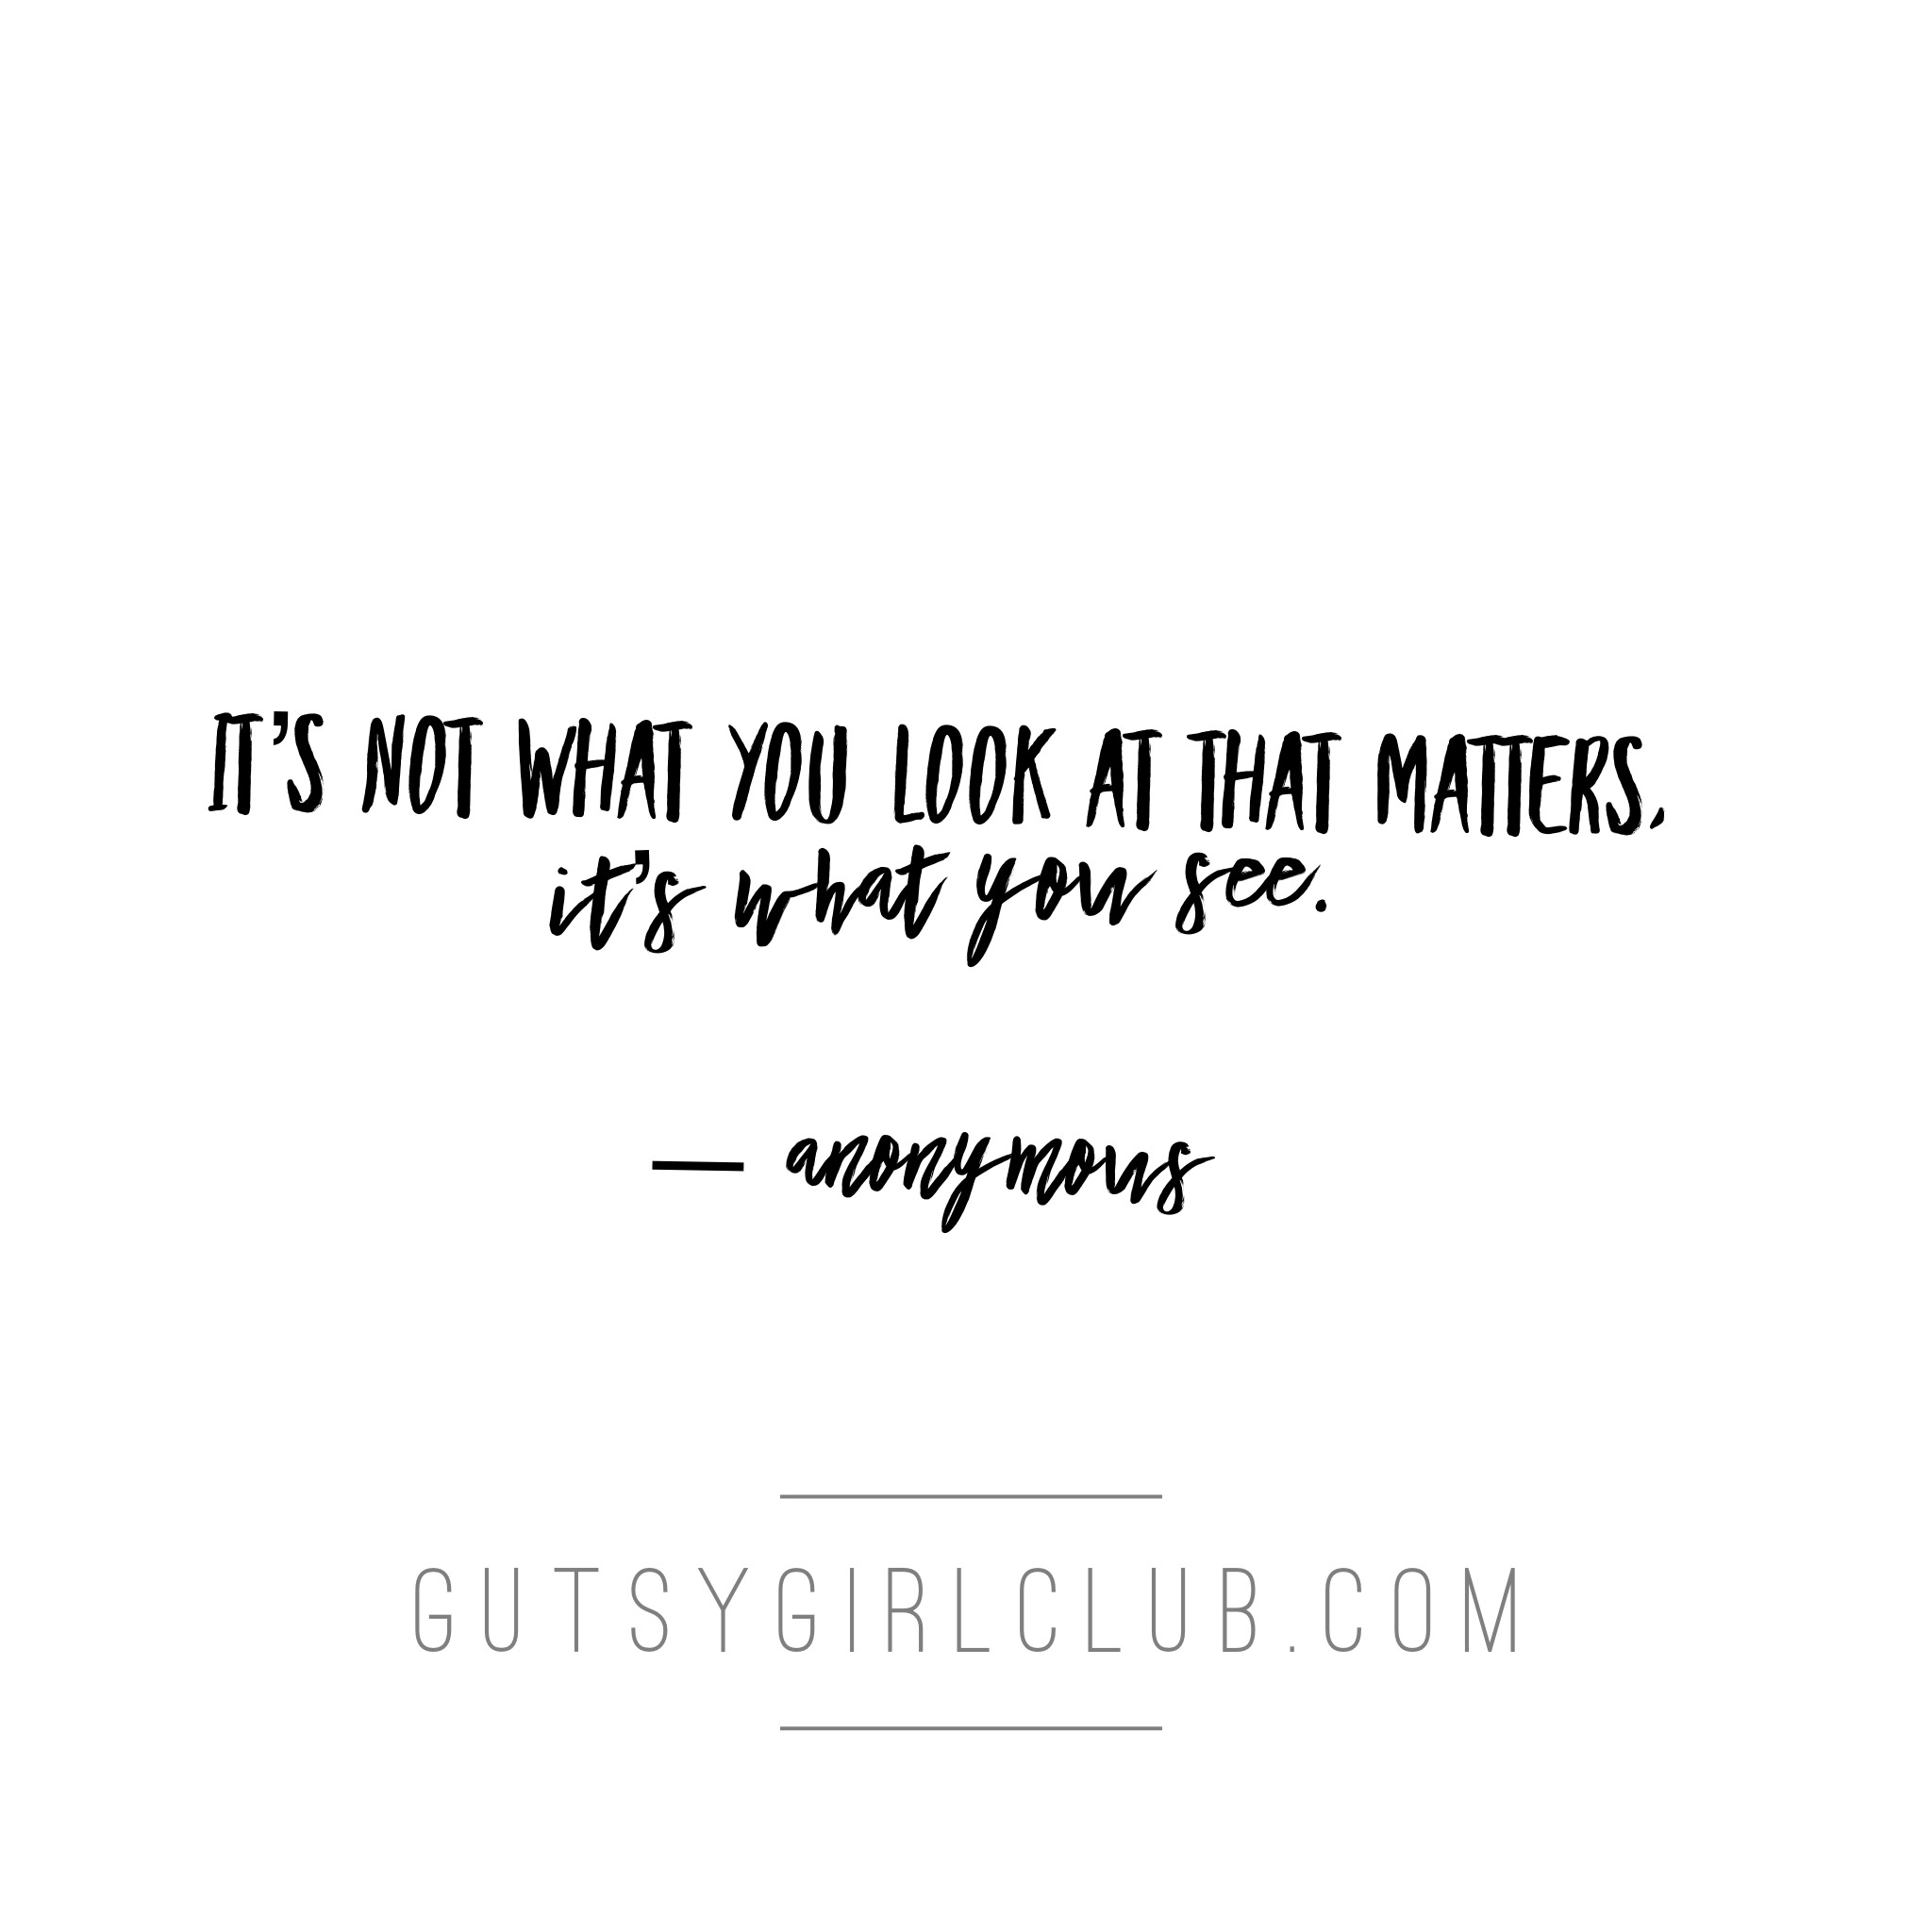 It's not what you look at that matters....it's what you see.